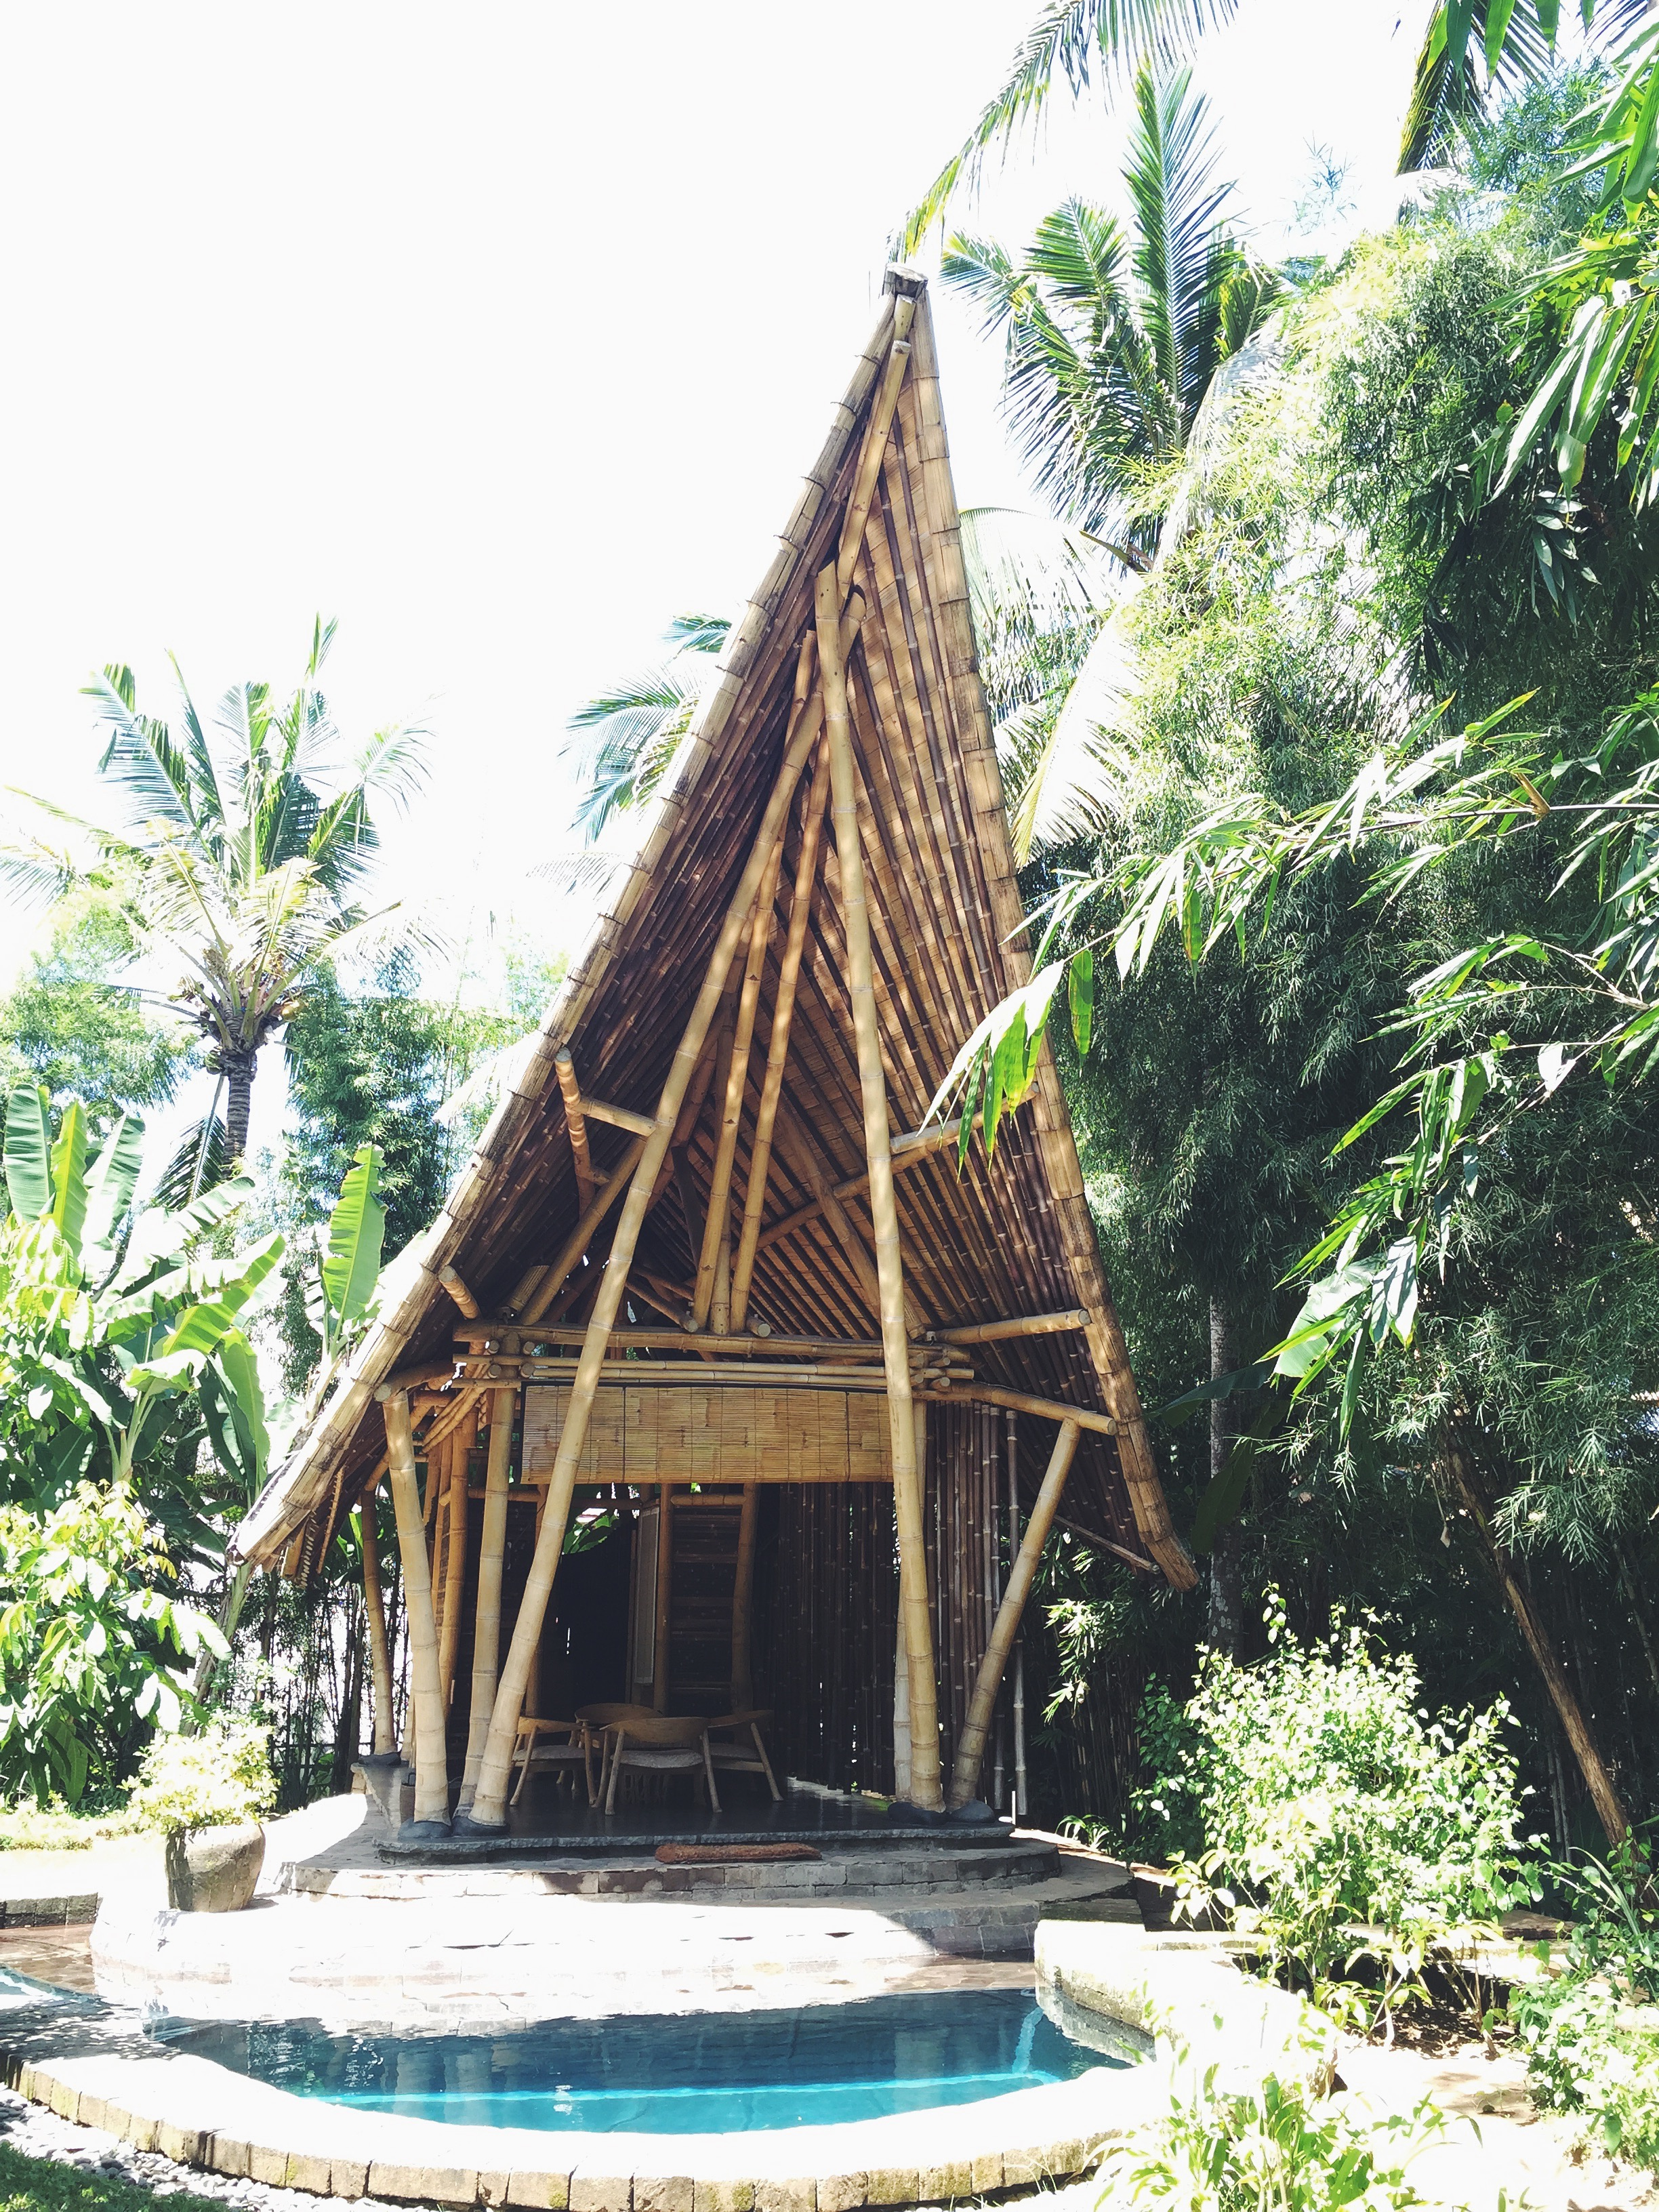 We also visited The Green Village, a community of houses made entirely of bamboo.